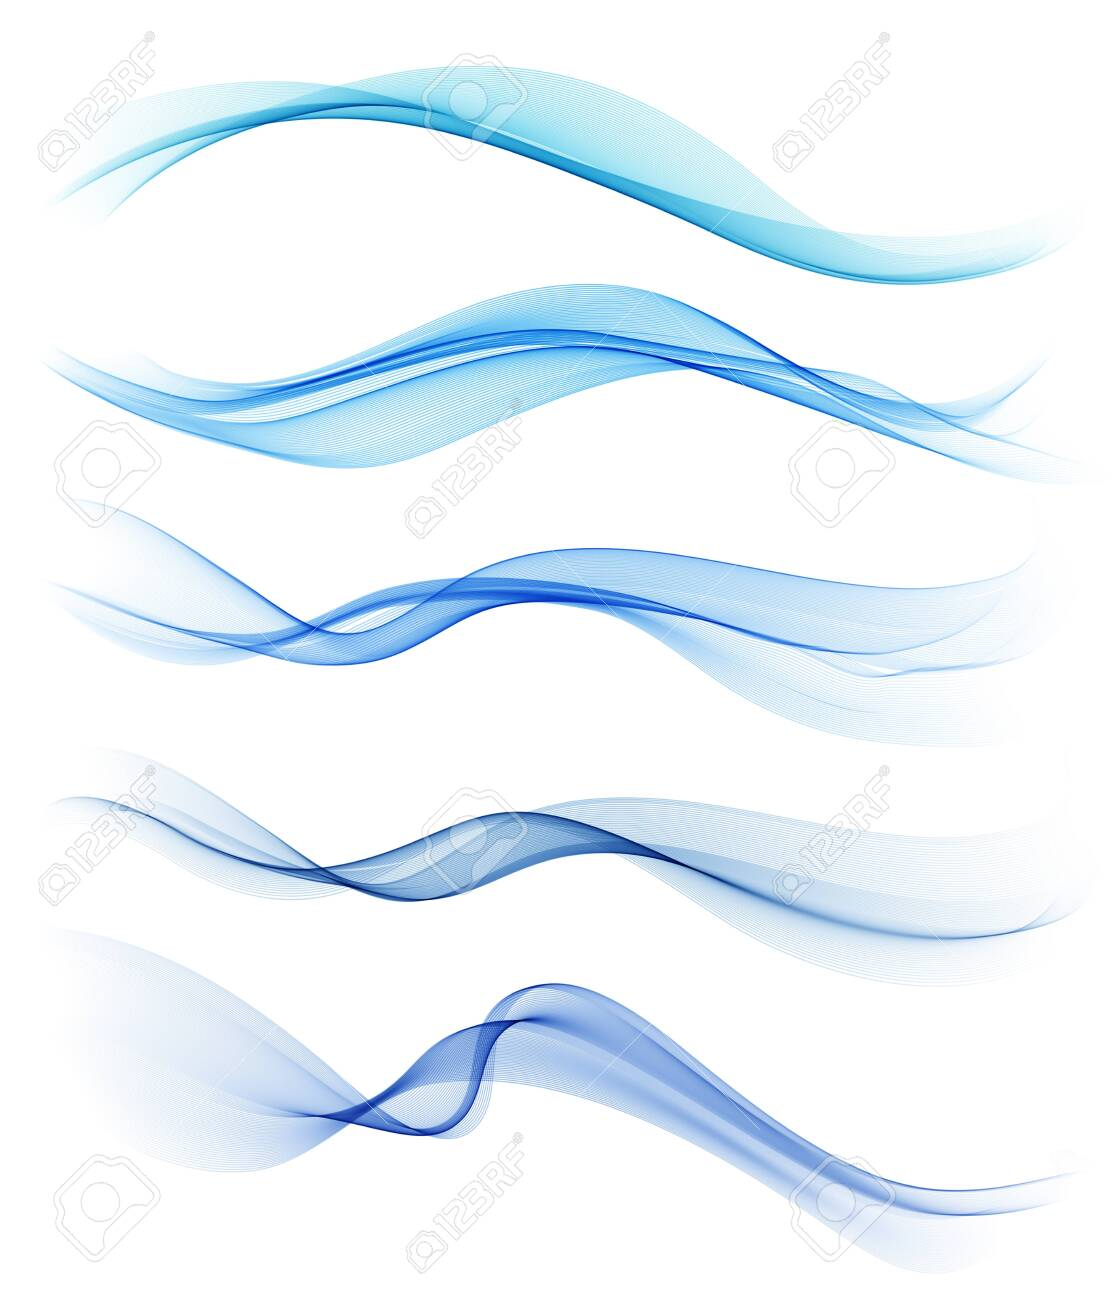 Set of blue abstract wave design element - 131089272